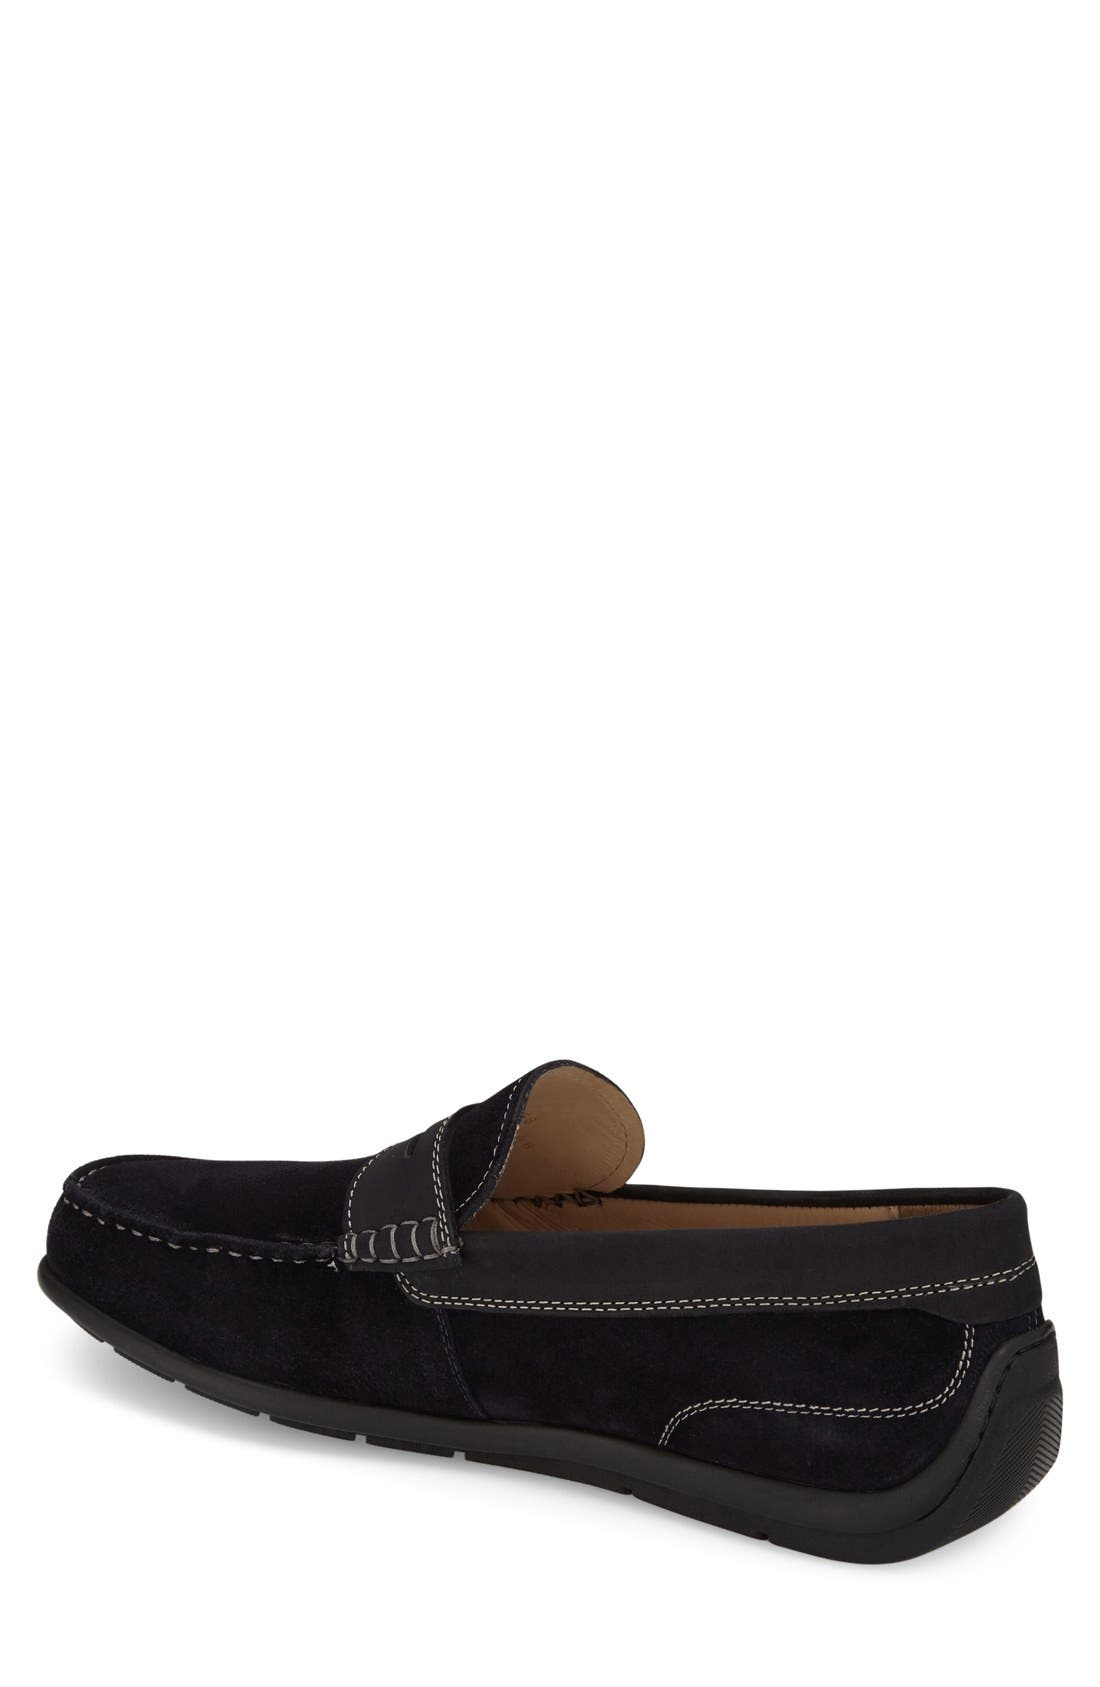 'Classic Moc 2.0' Penny Loafer,                             Alternate thumbnail 9, color,